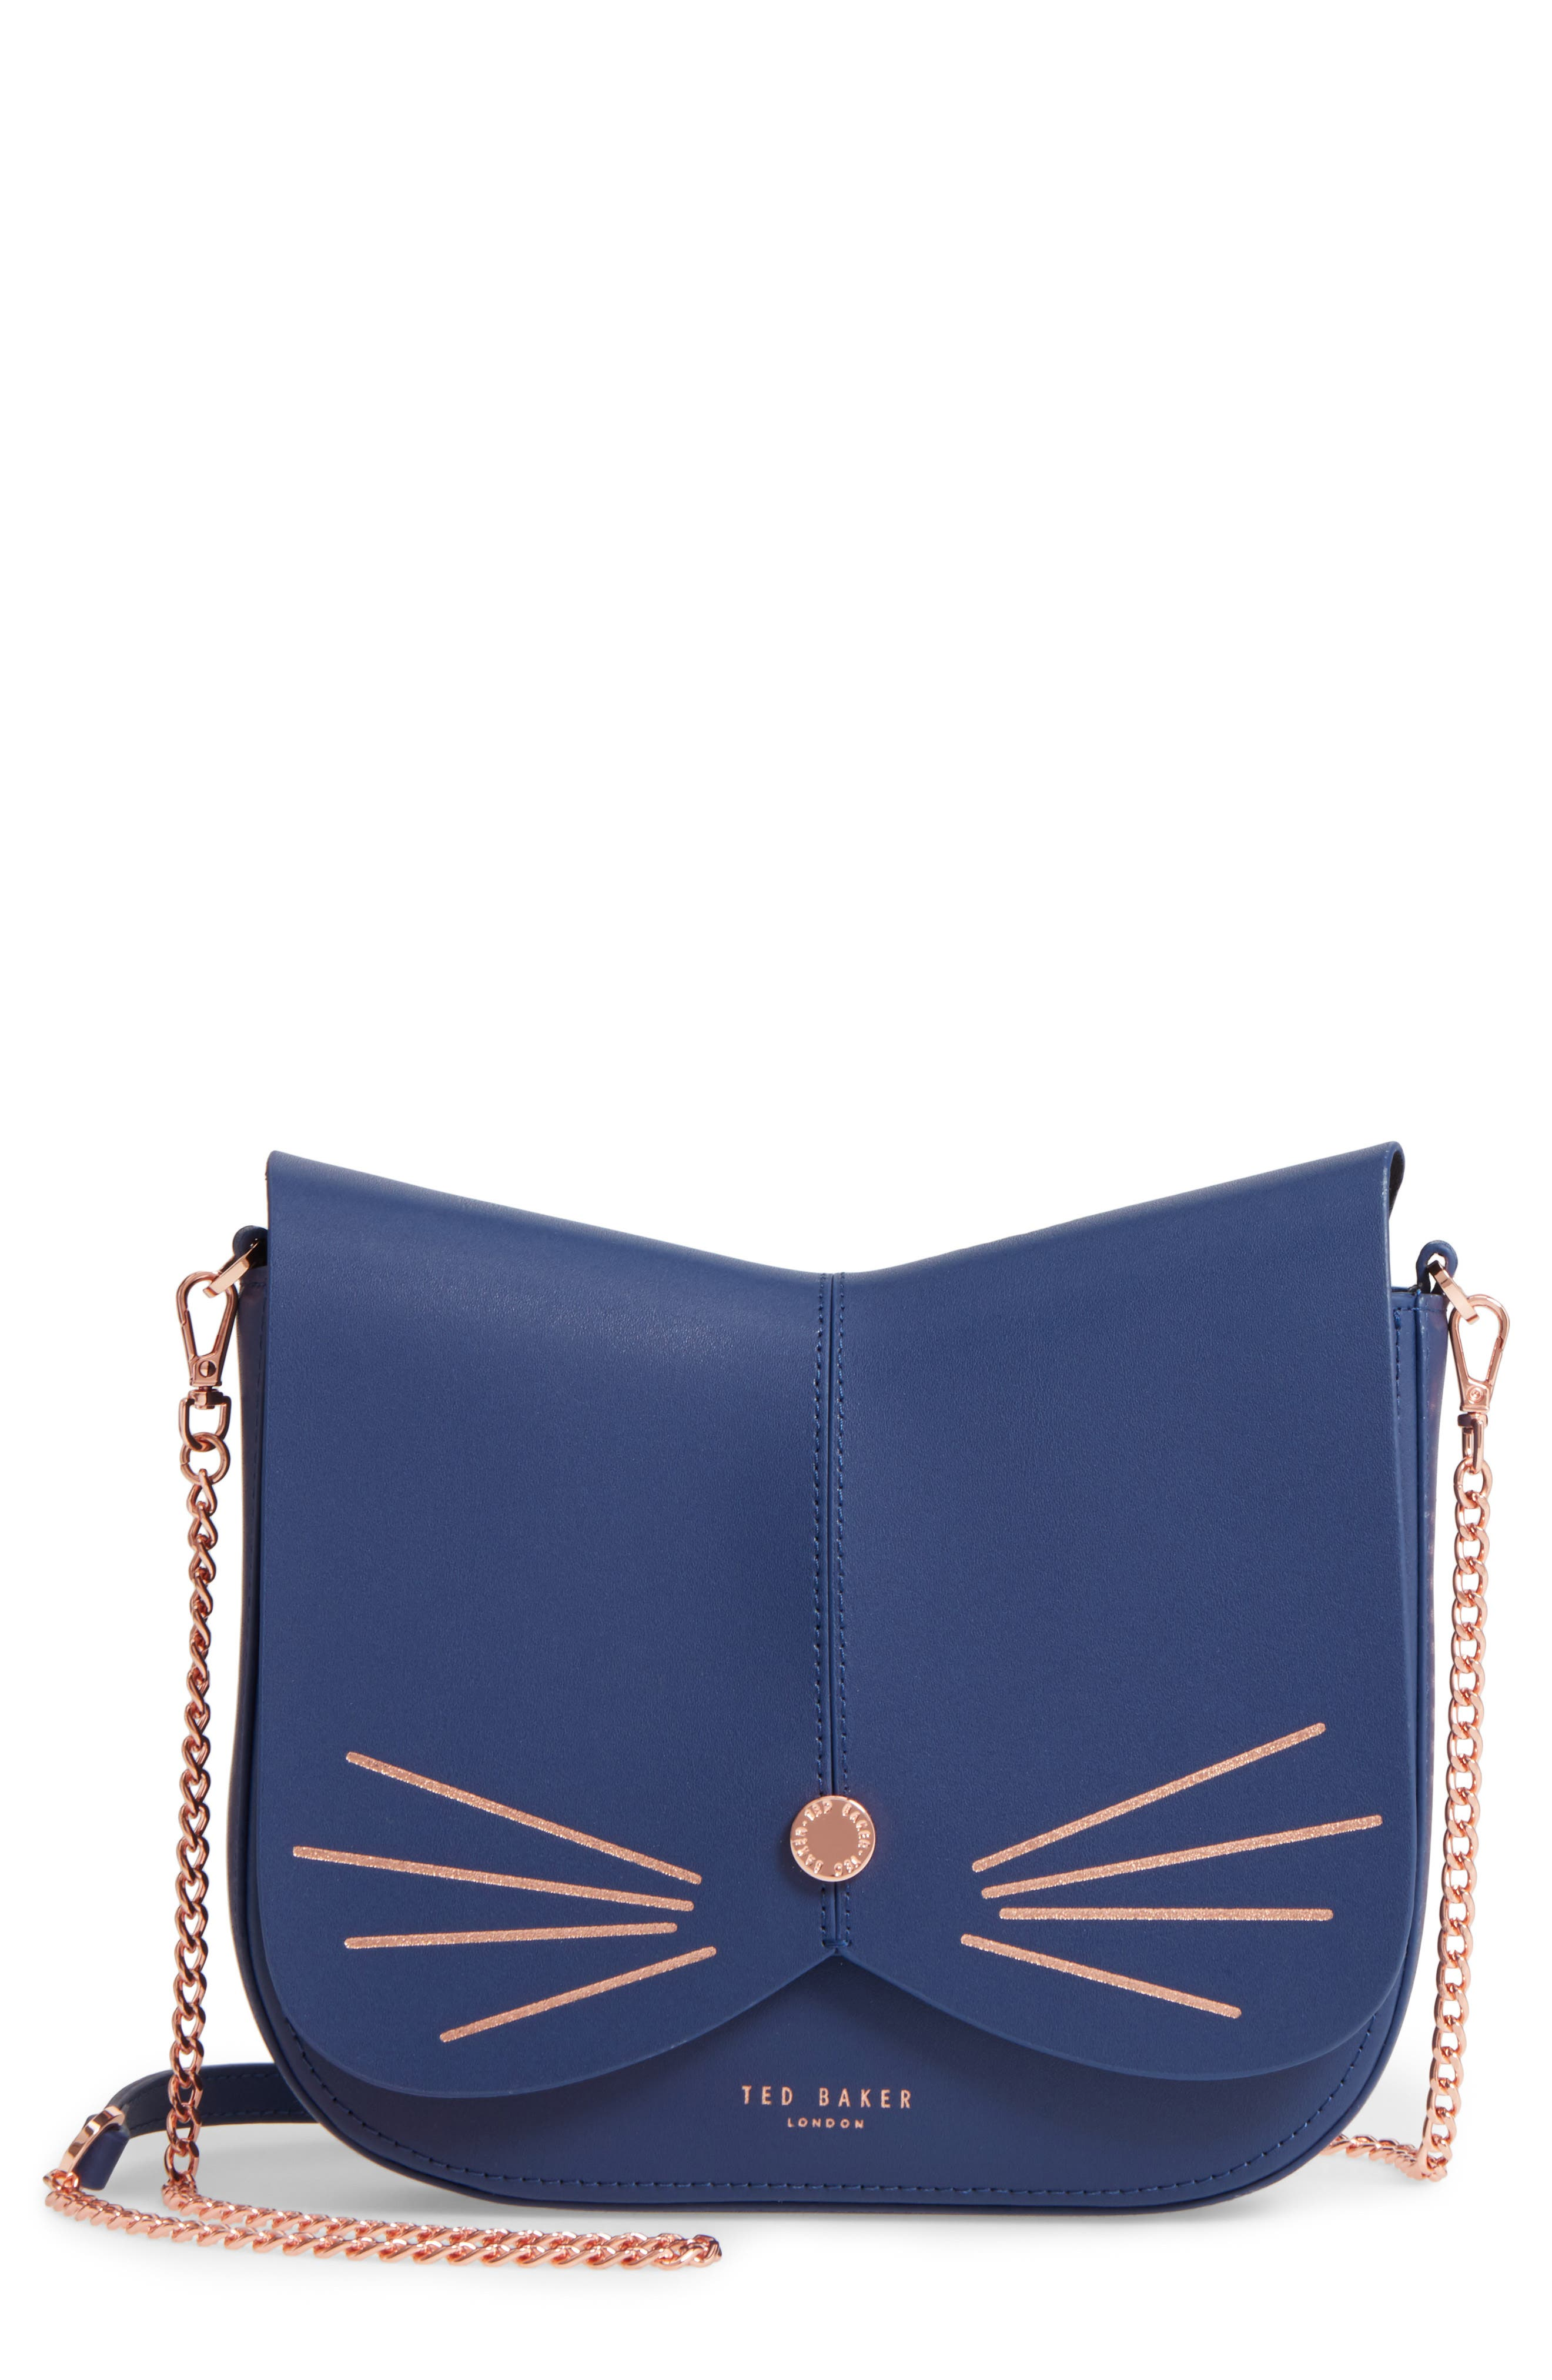 Ted Baker London Kittii Cat Leather Crossbody Bag